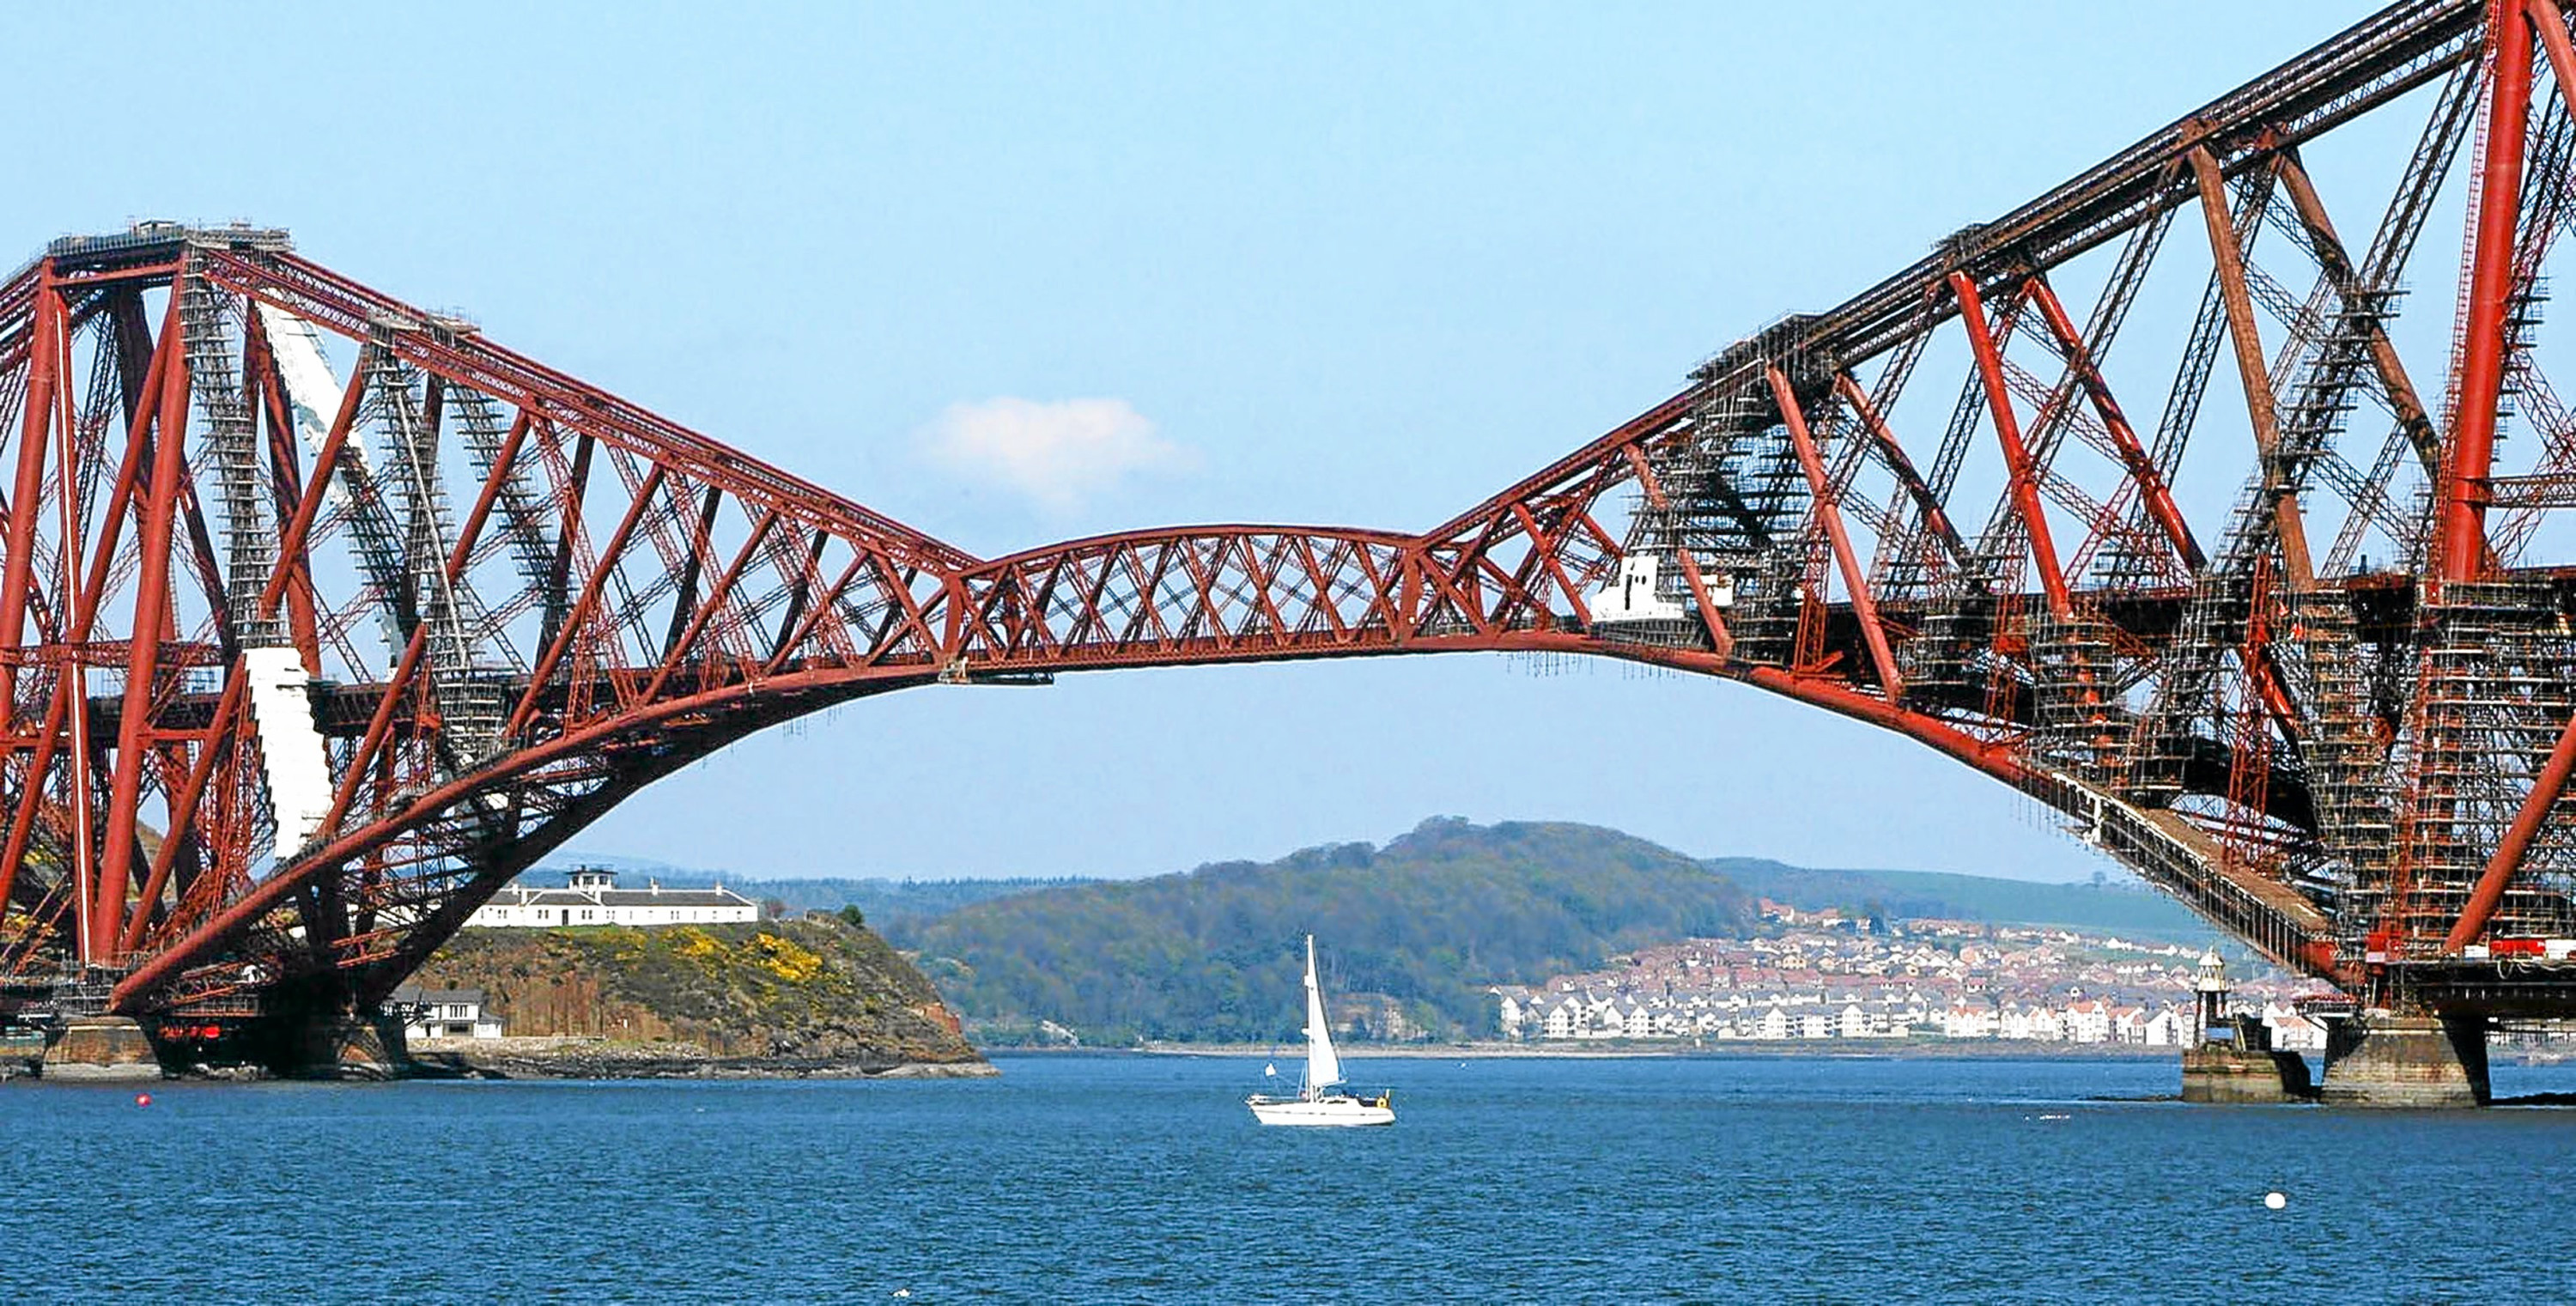 The Forth Bridge, which gained UNESCO world heritage status.